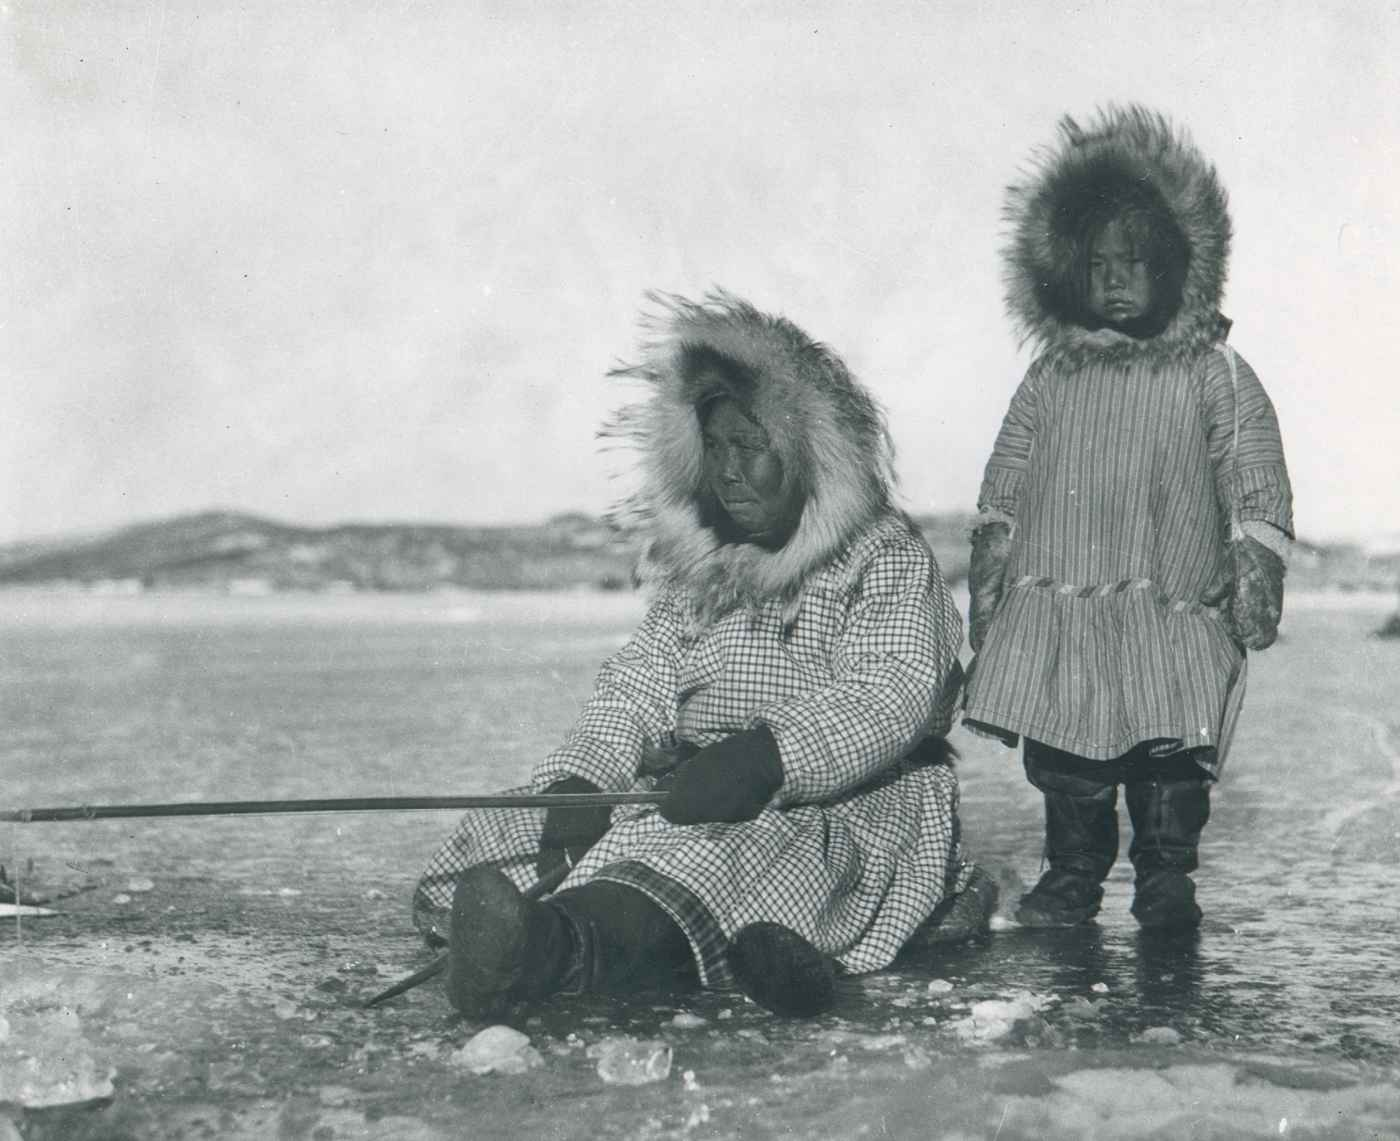 File:Eskimos woman and girl ice fishing.jpg